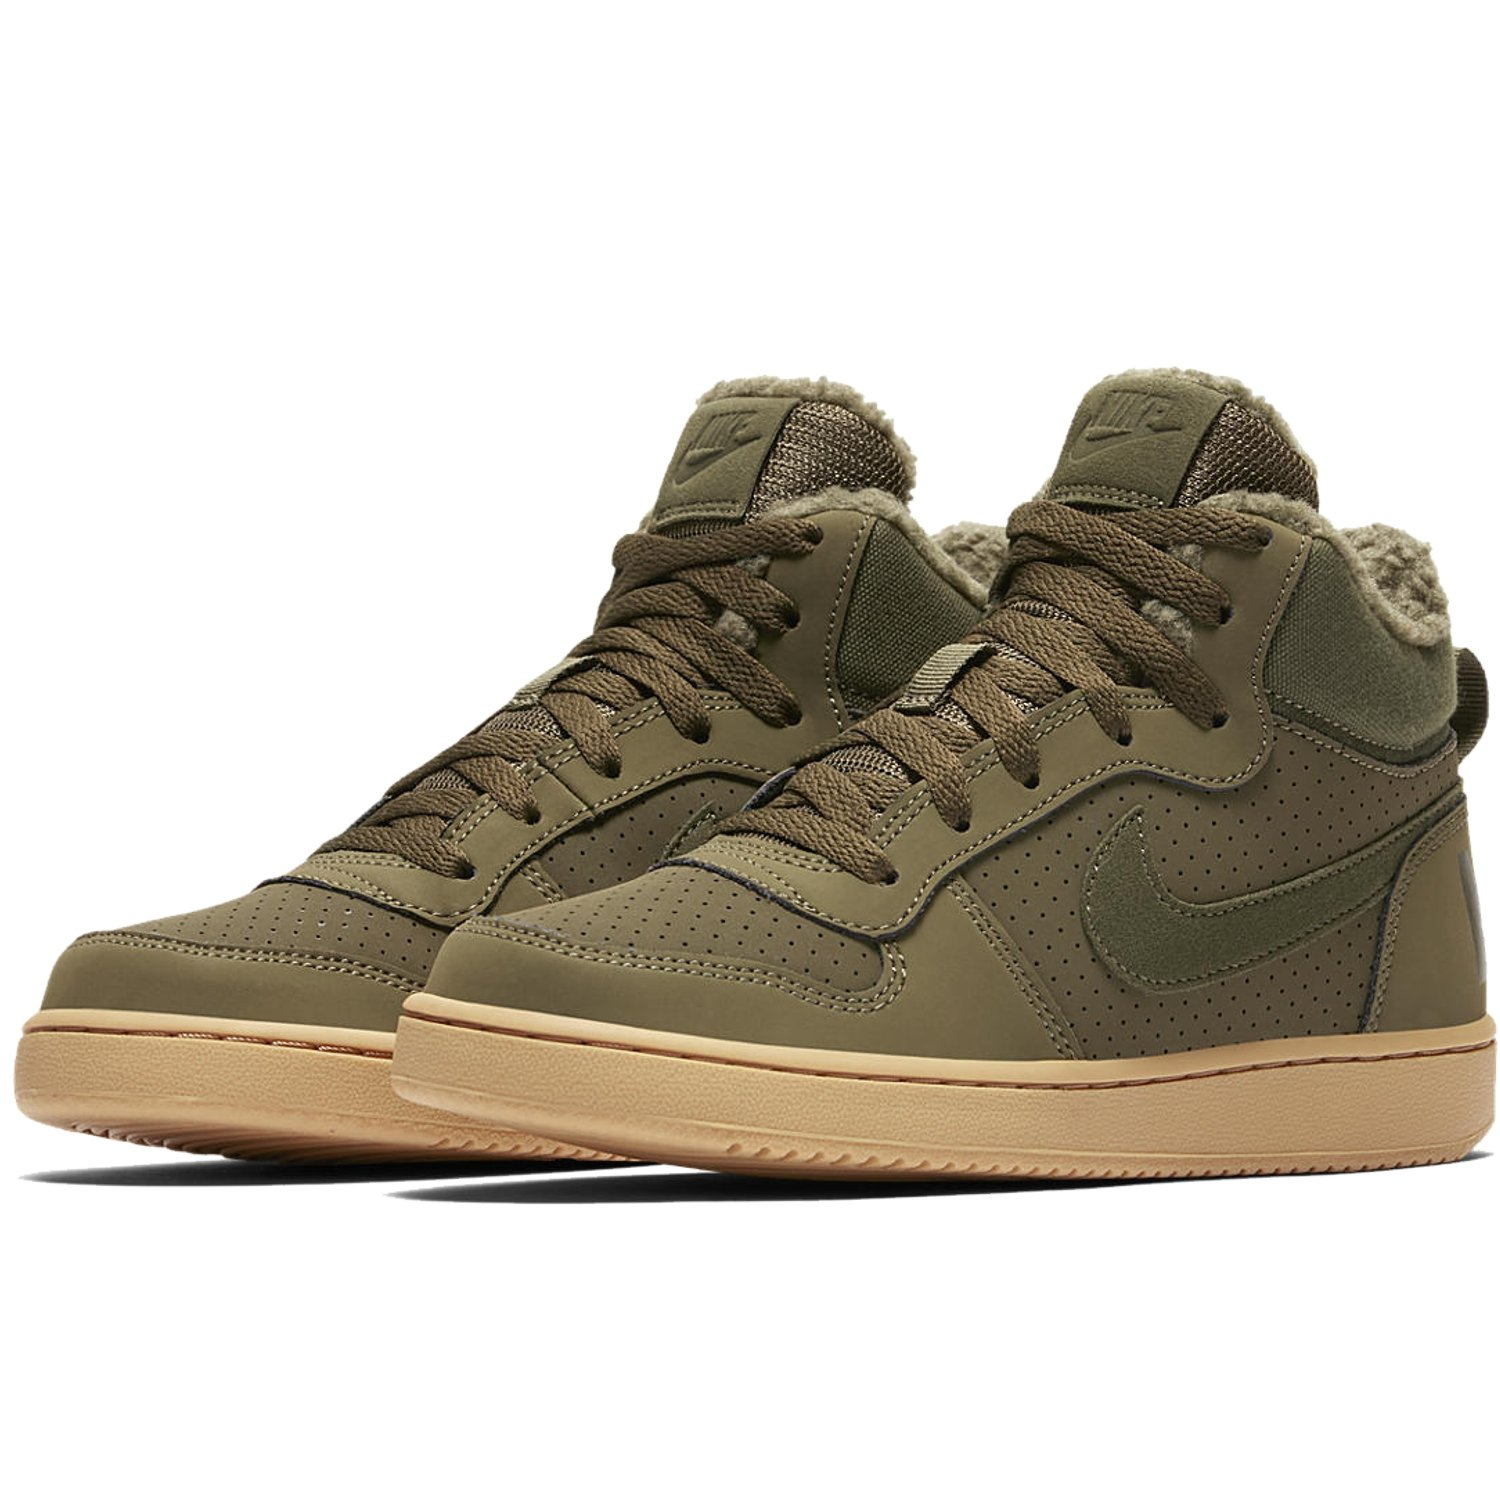 BUTY JUNIOR NIKE COURT BOROUGH MID WINTER ZIELONE AA3458-300 (GS)